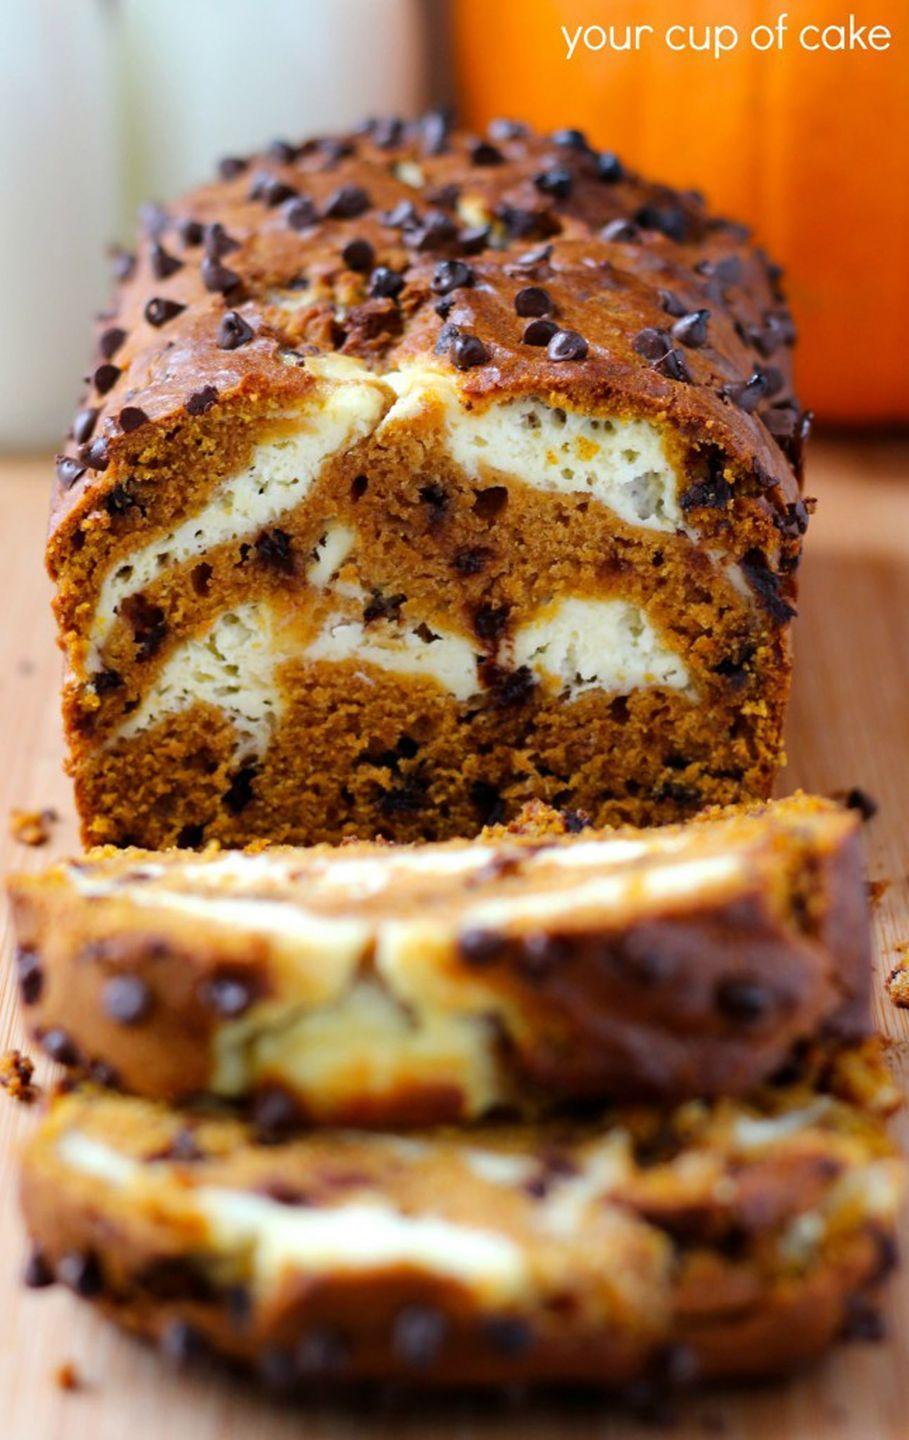 """<p>Chocolate chips are called for in the batter, but an extra sprinkling on top can't hurt, either.<br></p><p><strong>Get the recipe at <a href=""""http://www.yourcupofcake.com/2013/11/pumpkin-cream-cheese-bread-and-muffins.html"""" rel=""""nofollow noopener"""" target=""""_blank"""" data-ylk=""""slk:Your Cup of Cake"""" class=""""link rapid-noclick-resp"""">Your Cup of Cake</a>.</strong> </p>"""